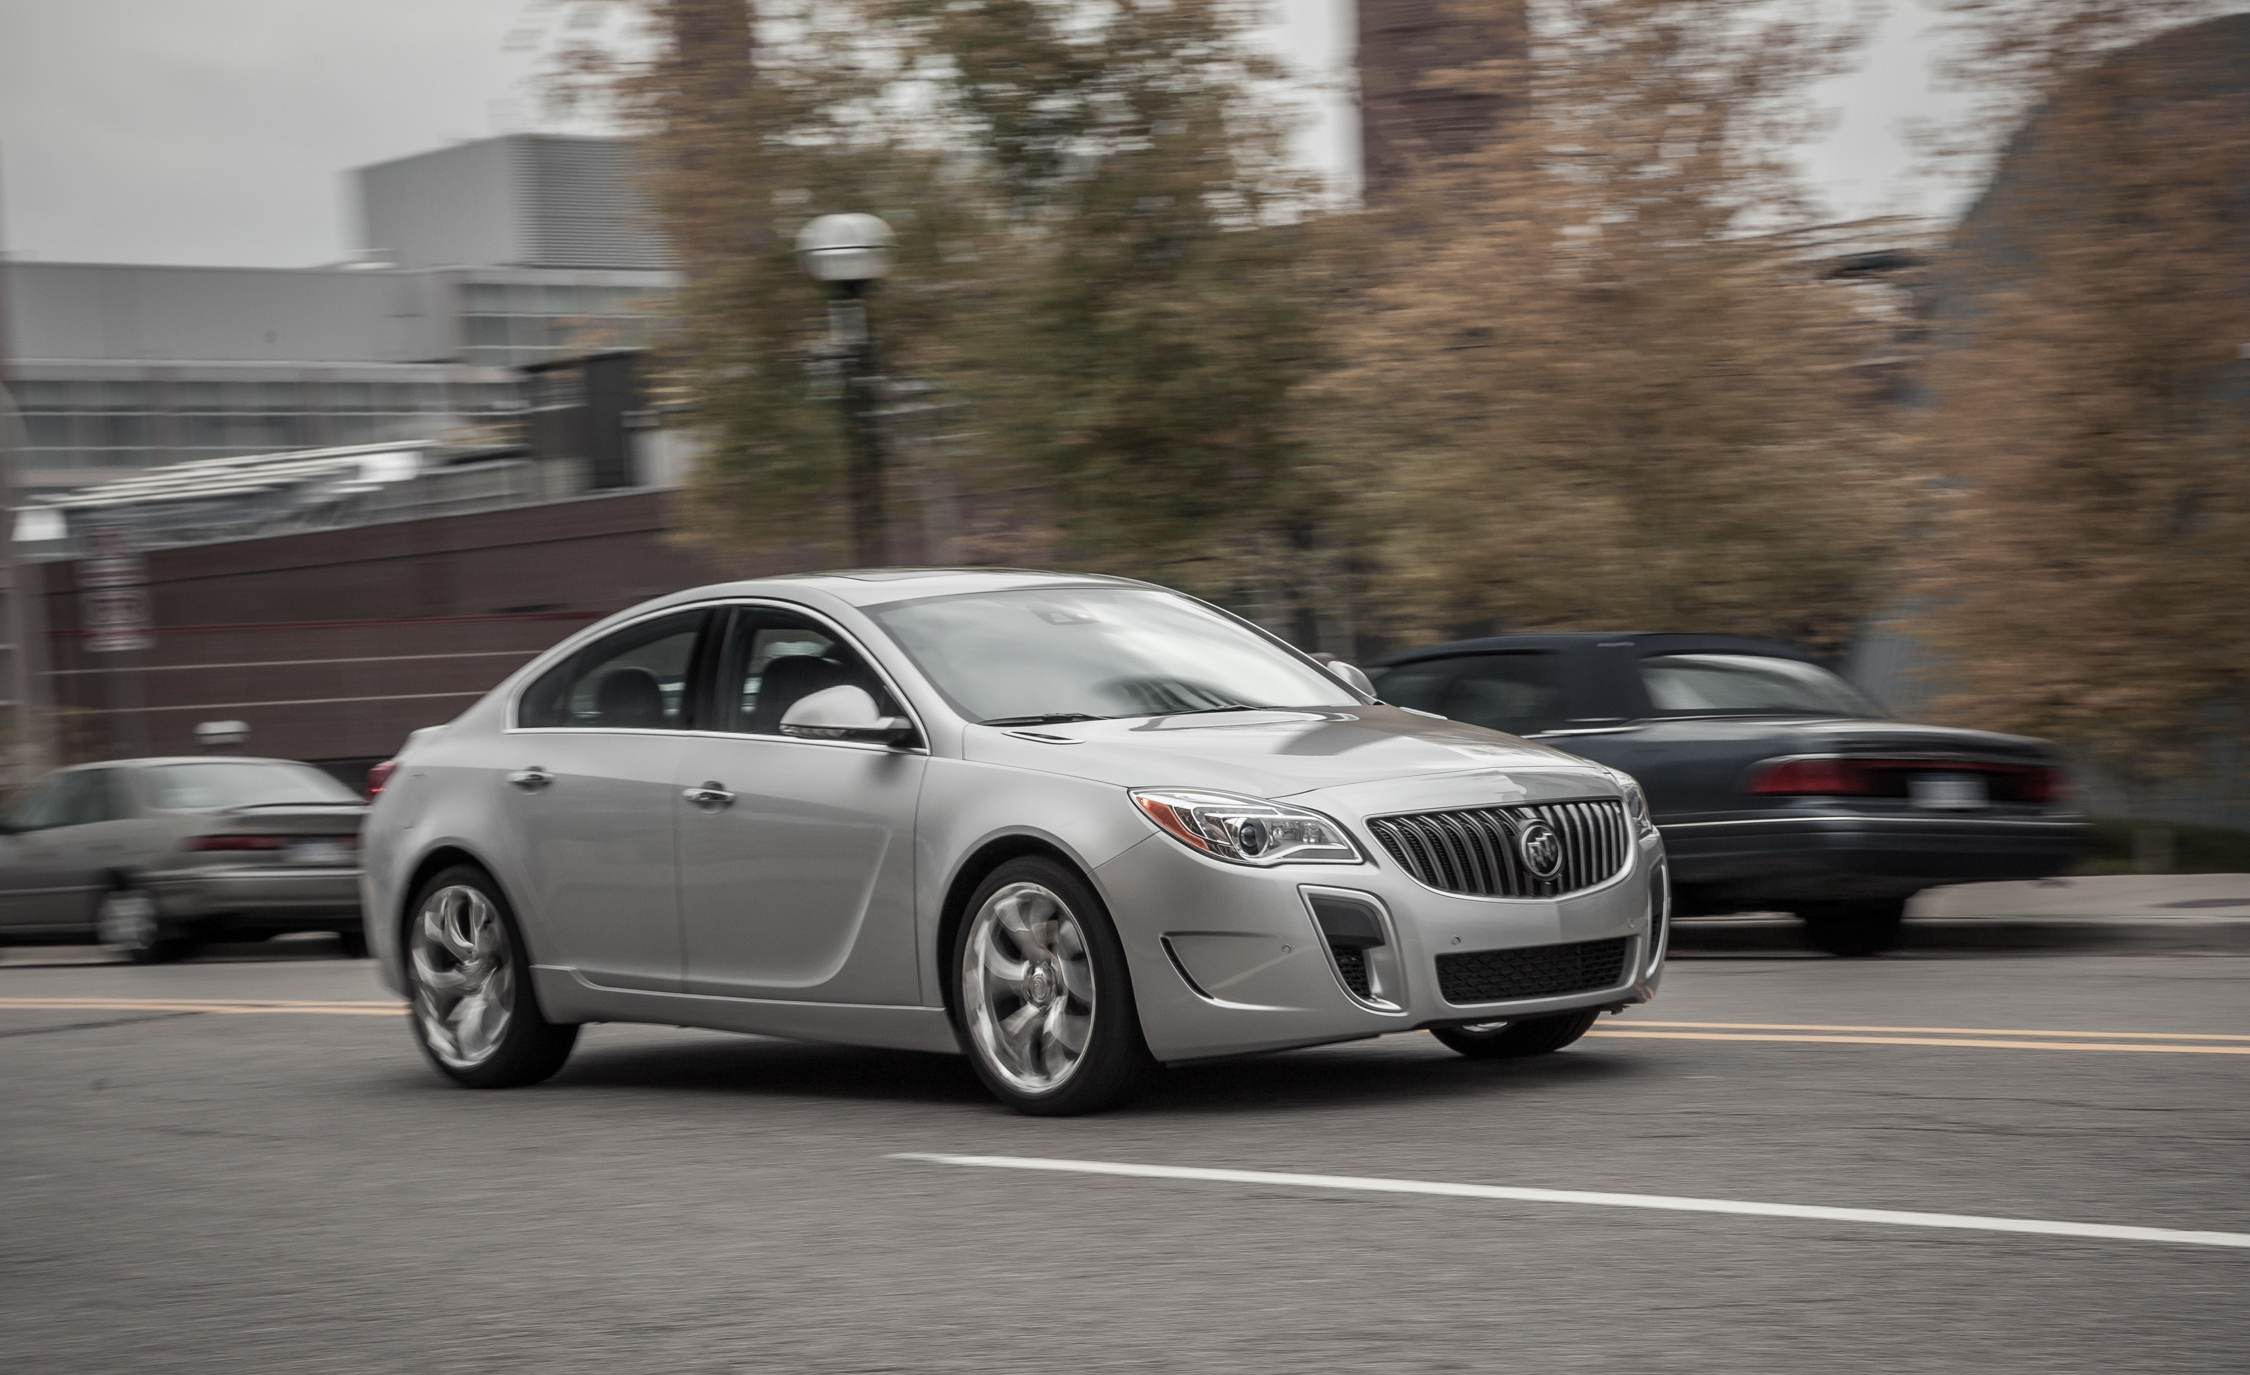 2014 Buick Regal GS (Photo 2 of 30)